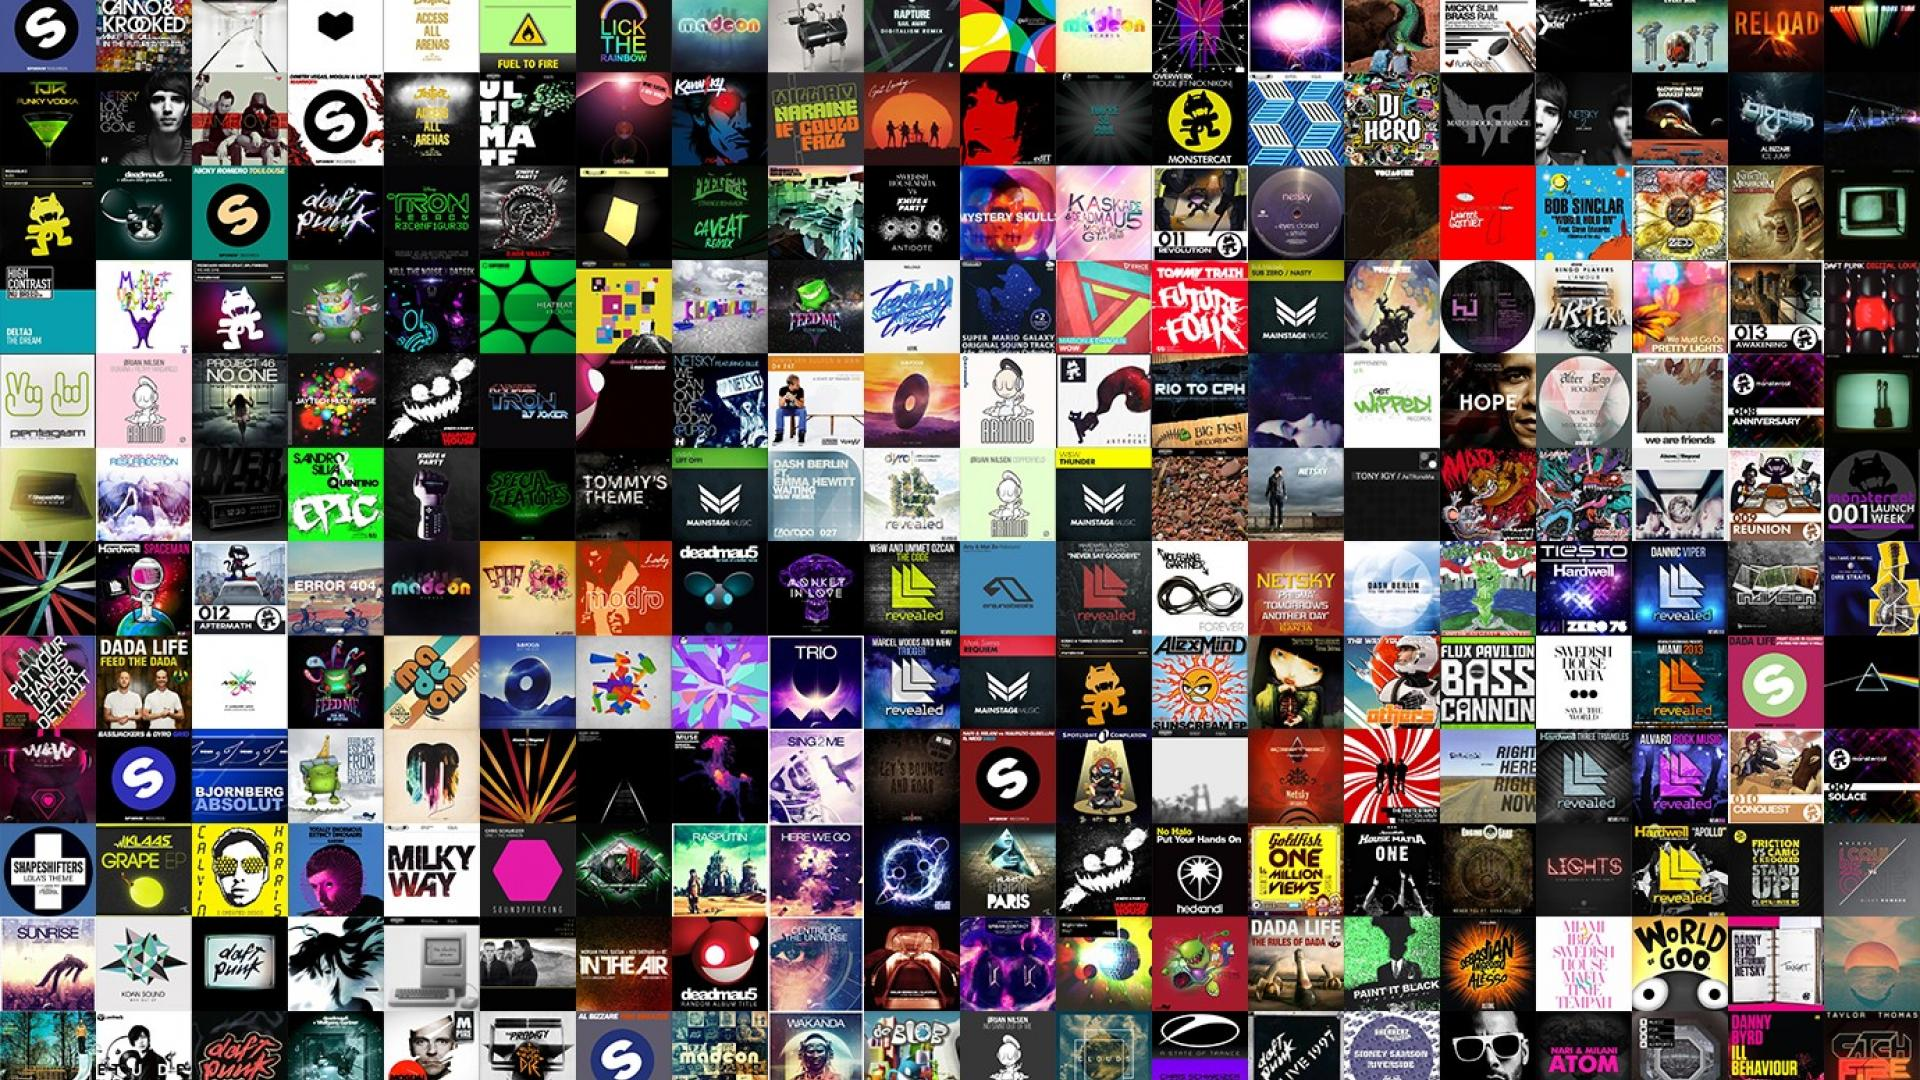 Download Music Collage Wallpaper Gallery